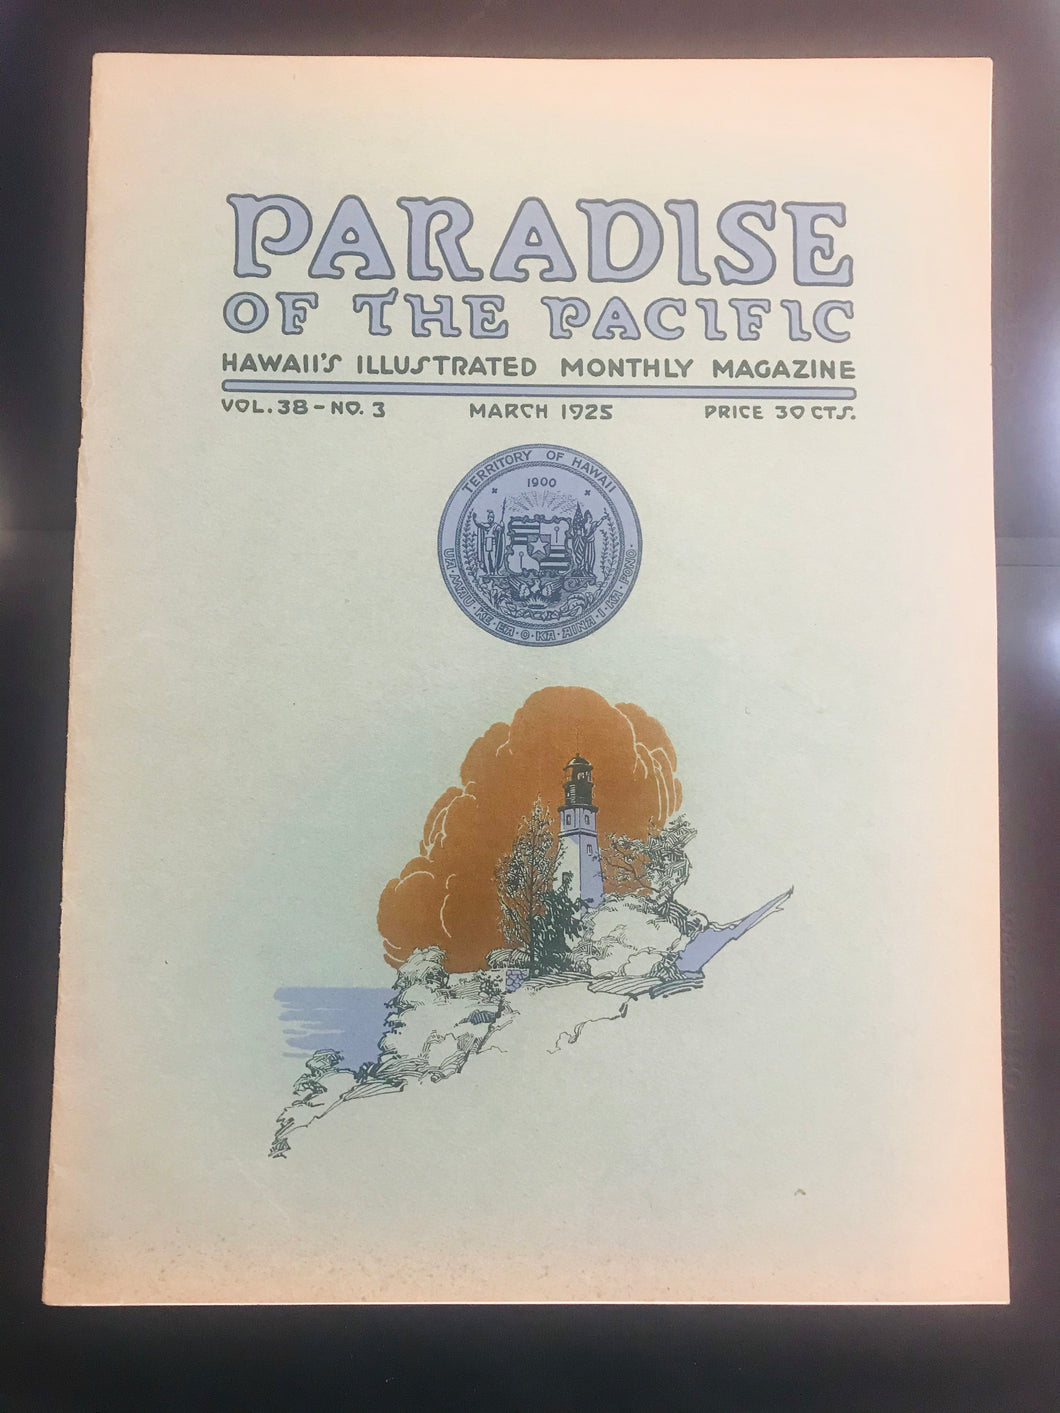 Paradise Of The Pacific, Hawaii's Illustrated Monthly Magazine March 1925